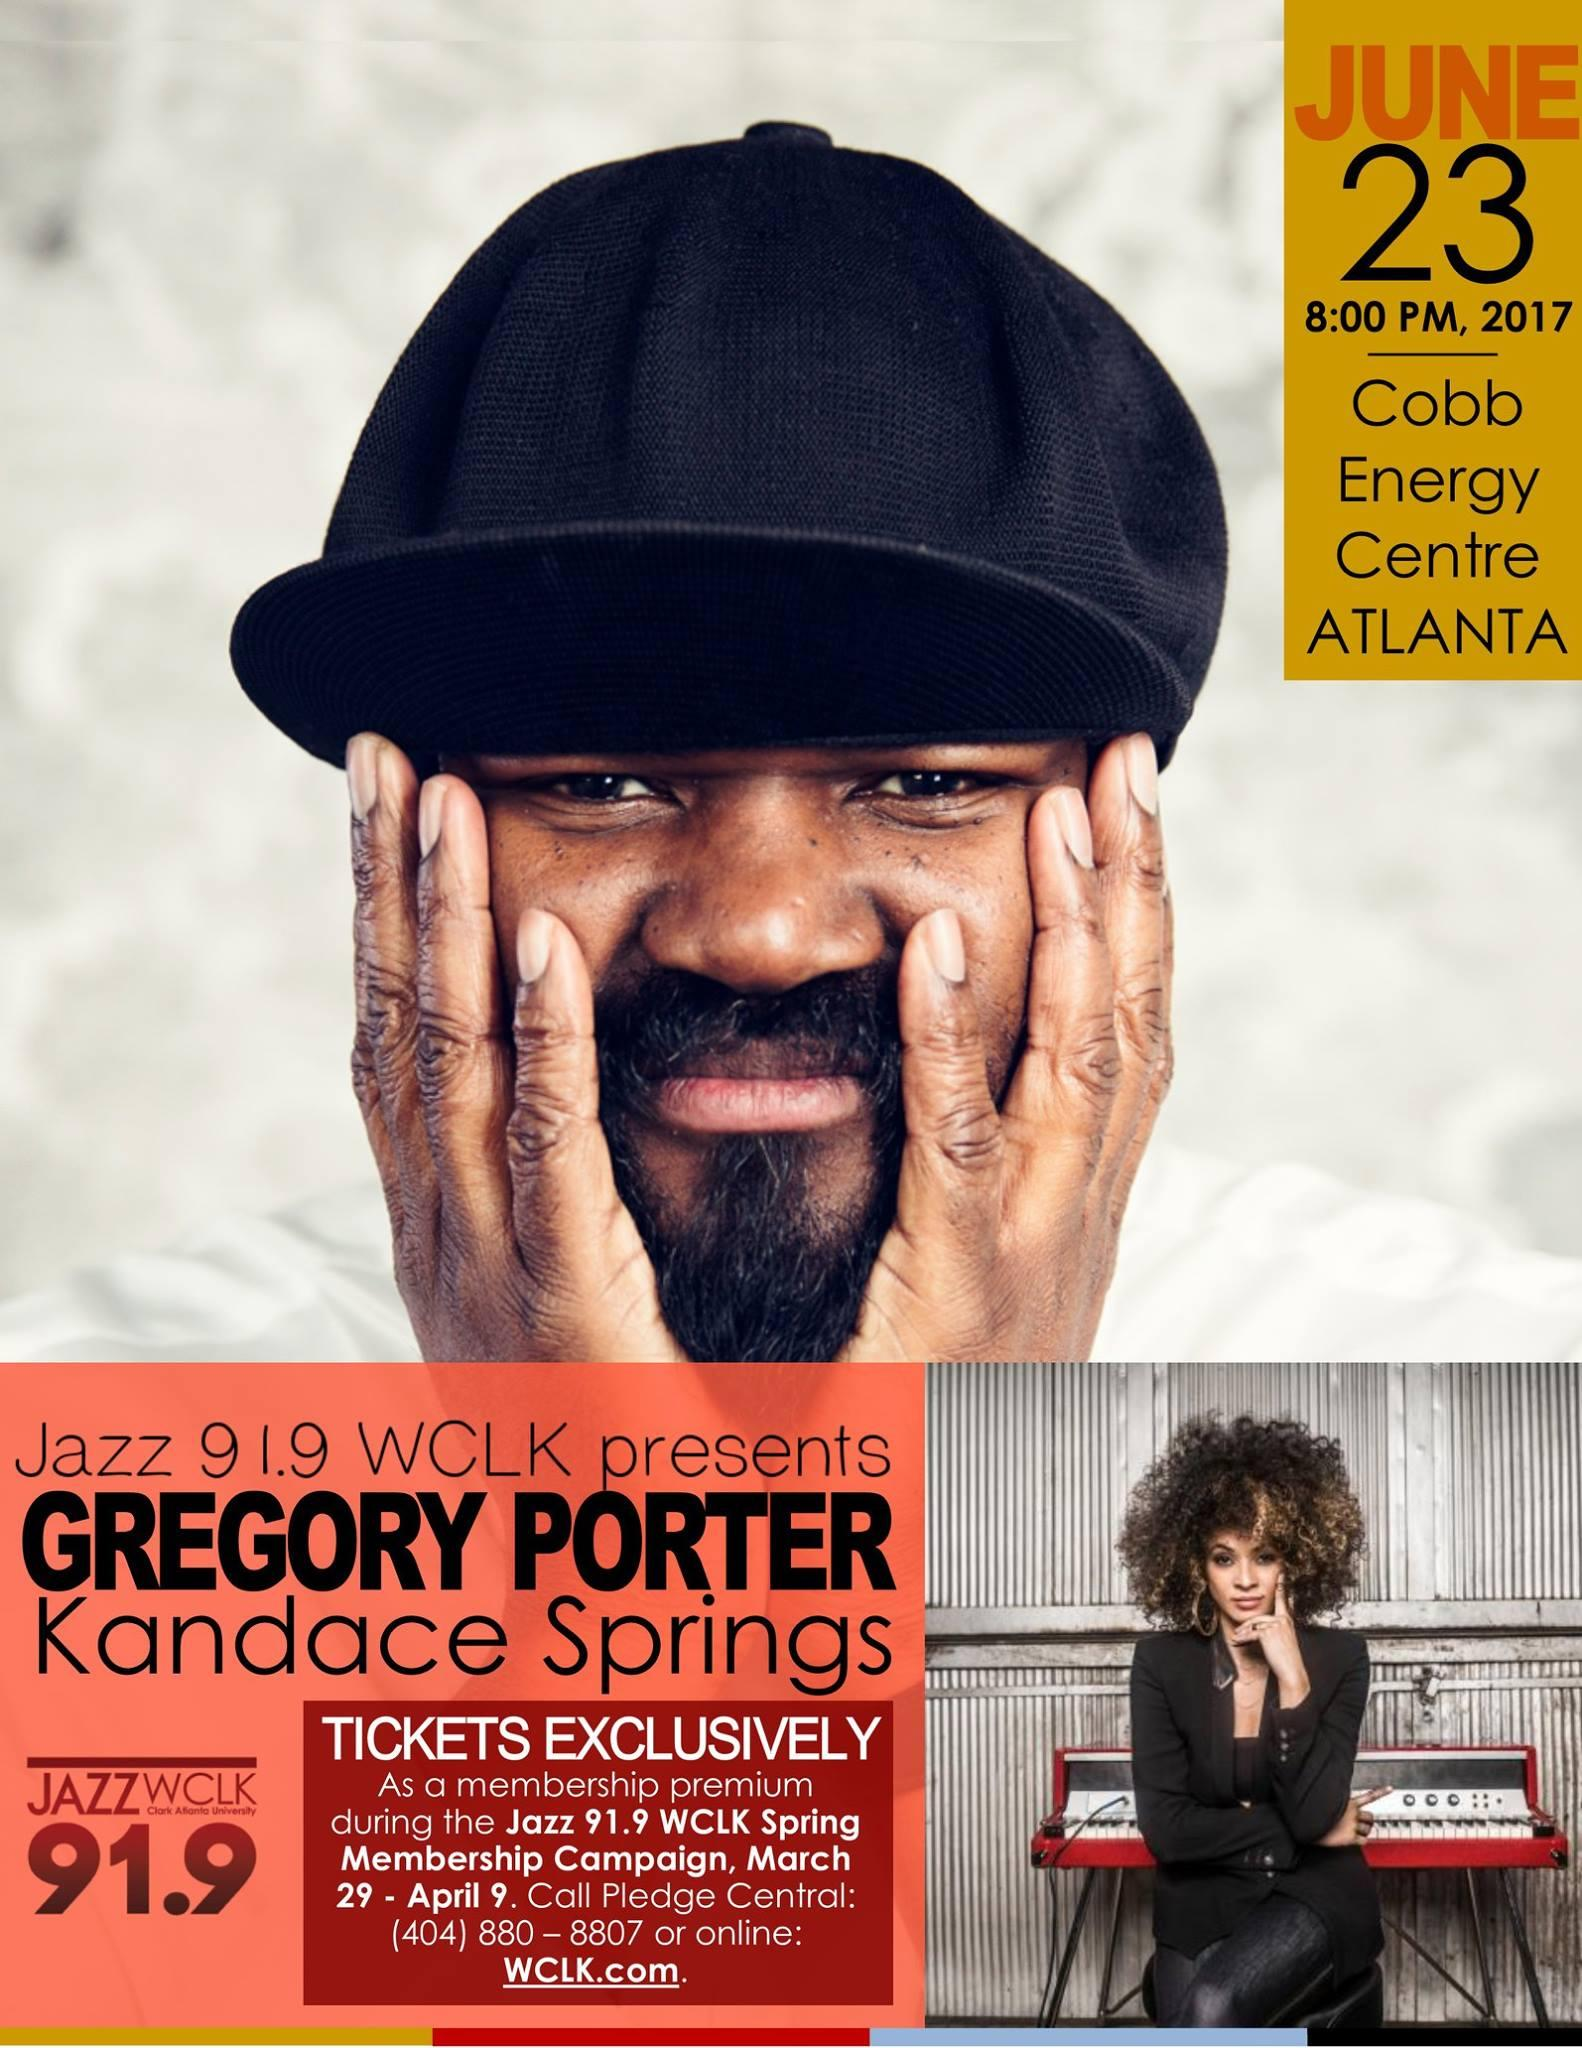 gregory porter kandace springs headline benefit concert wclk jazz 91 9 atlanta s jazz station presents grammy award winning vocalist gregory porter along singer and pianist kandace springs on friday